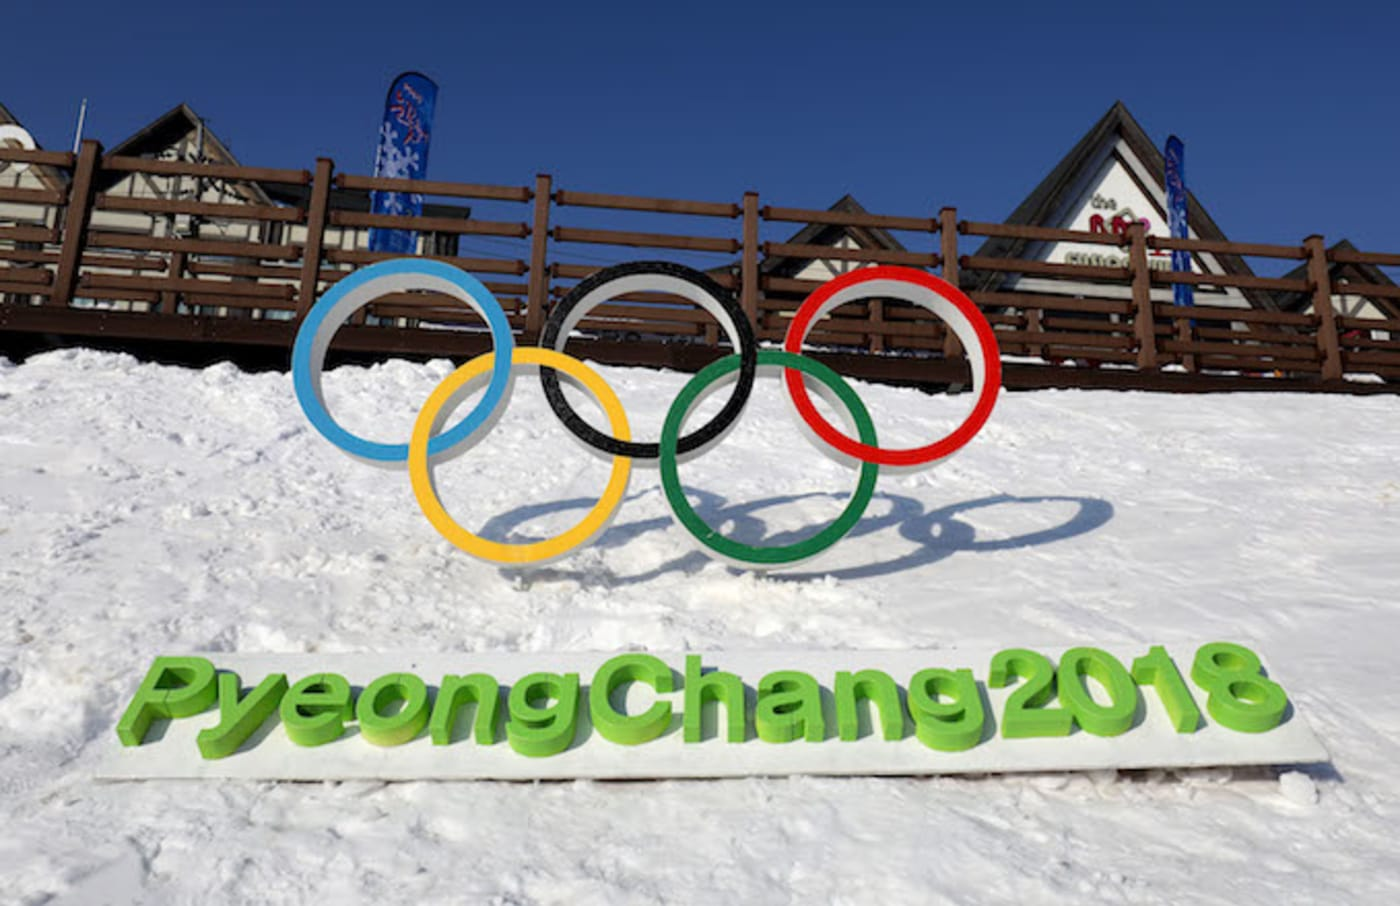 Near the venue for the Opening and Closing ceremony of PyeongChang 2018 Winter Olympic Games.